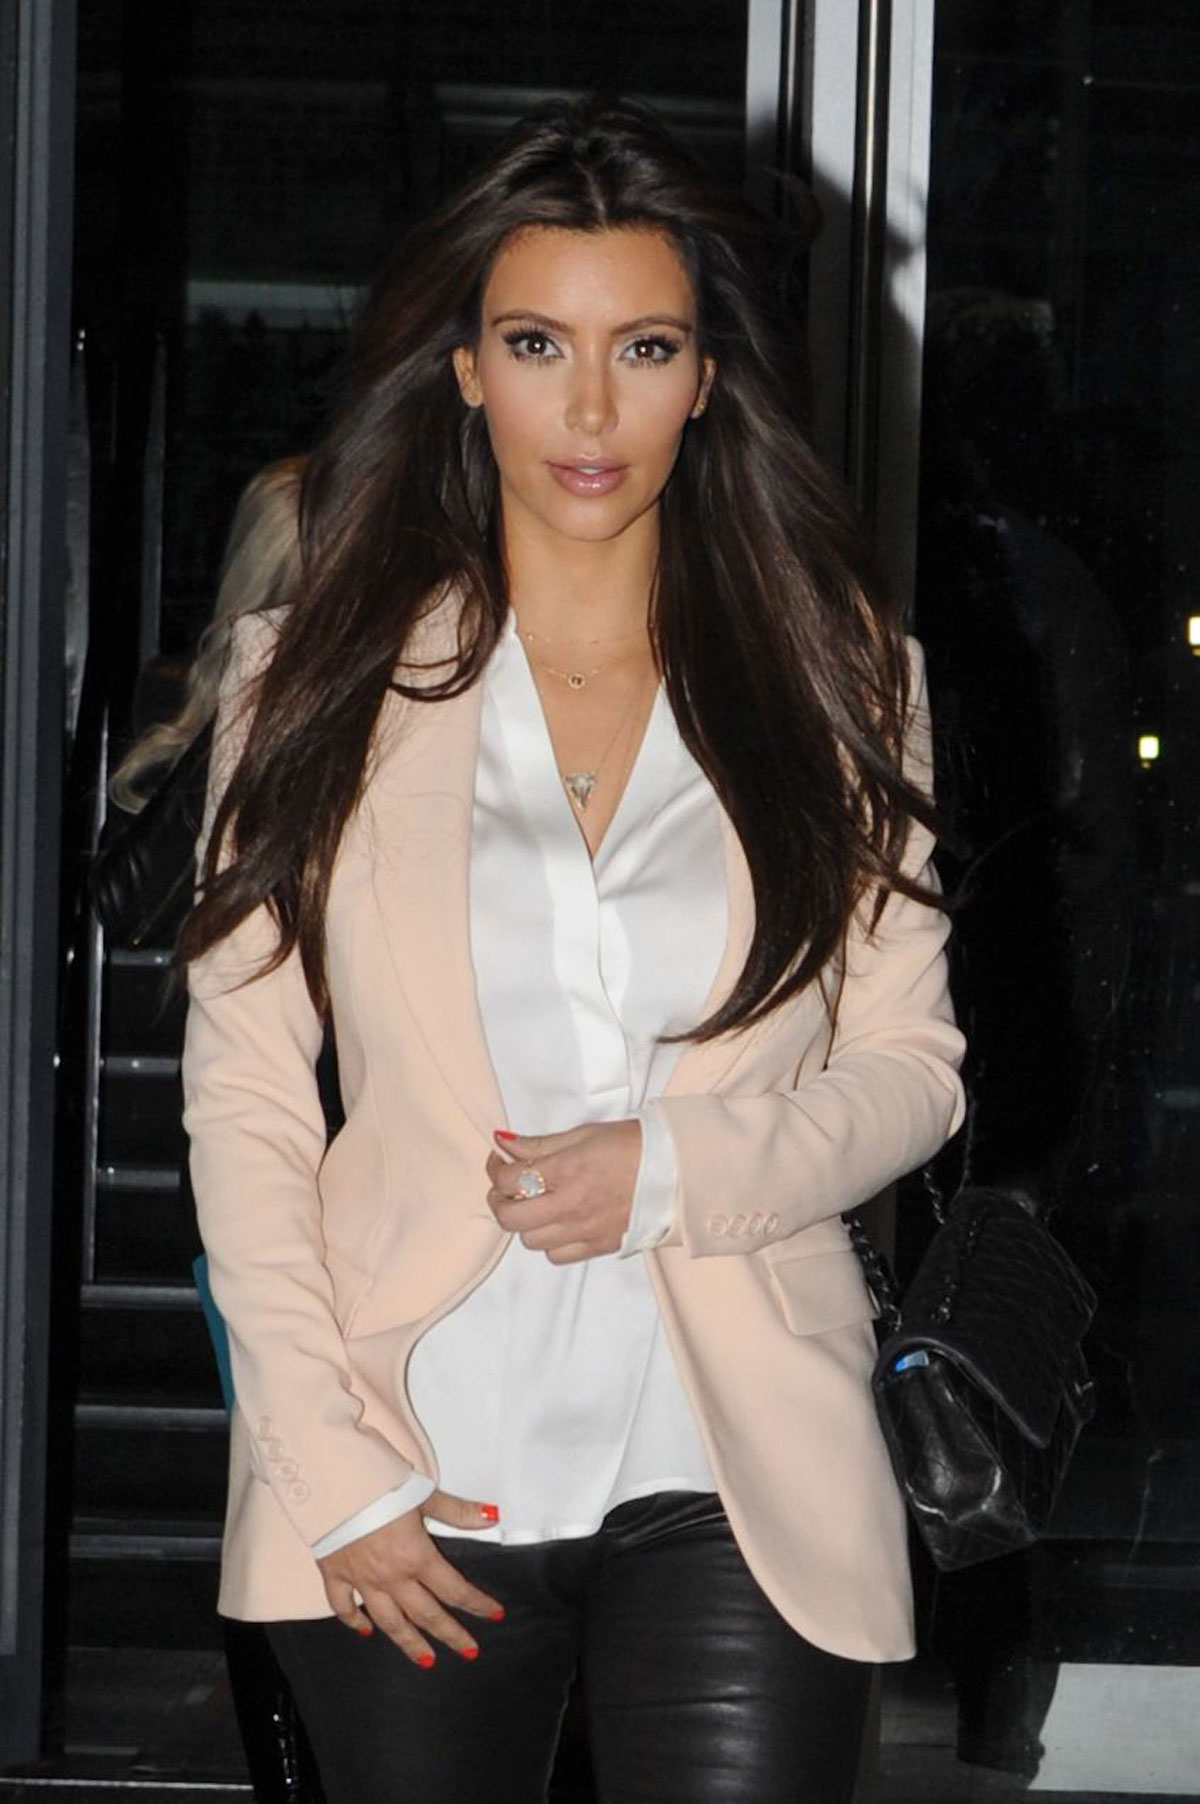 KIM KARDASHIAN Out and About in New York - HawtCelebs